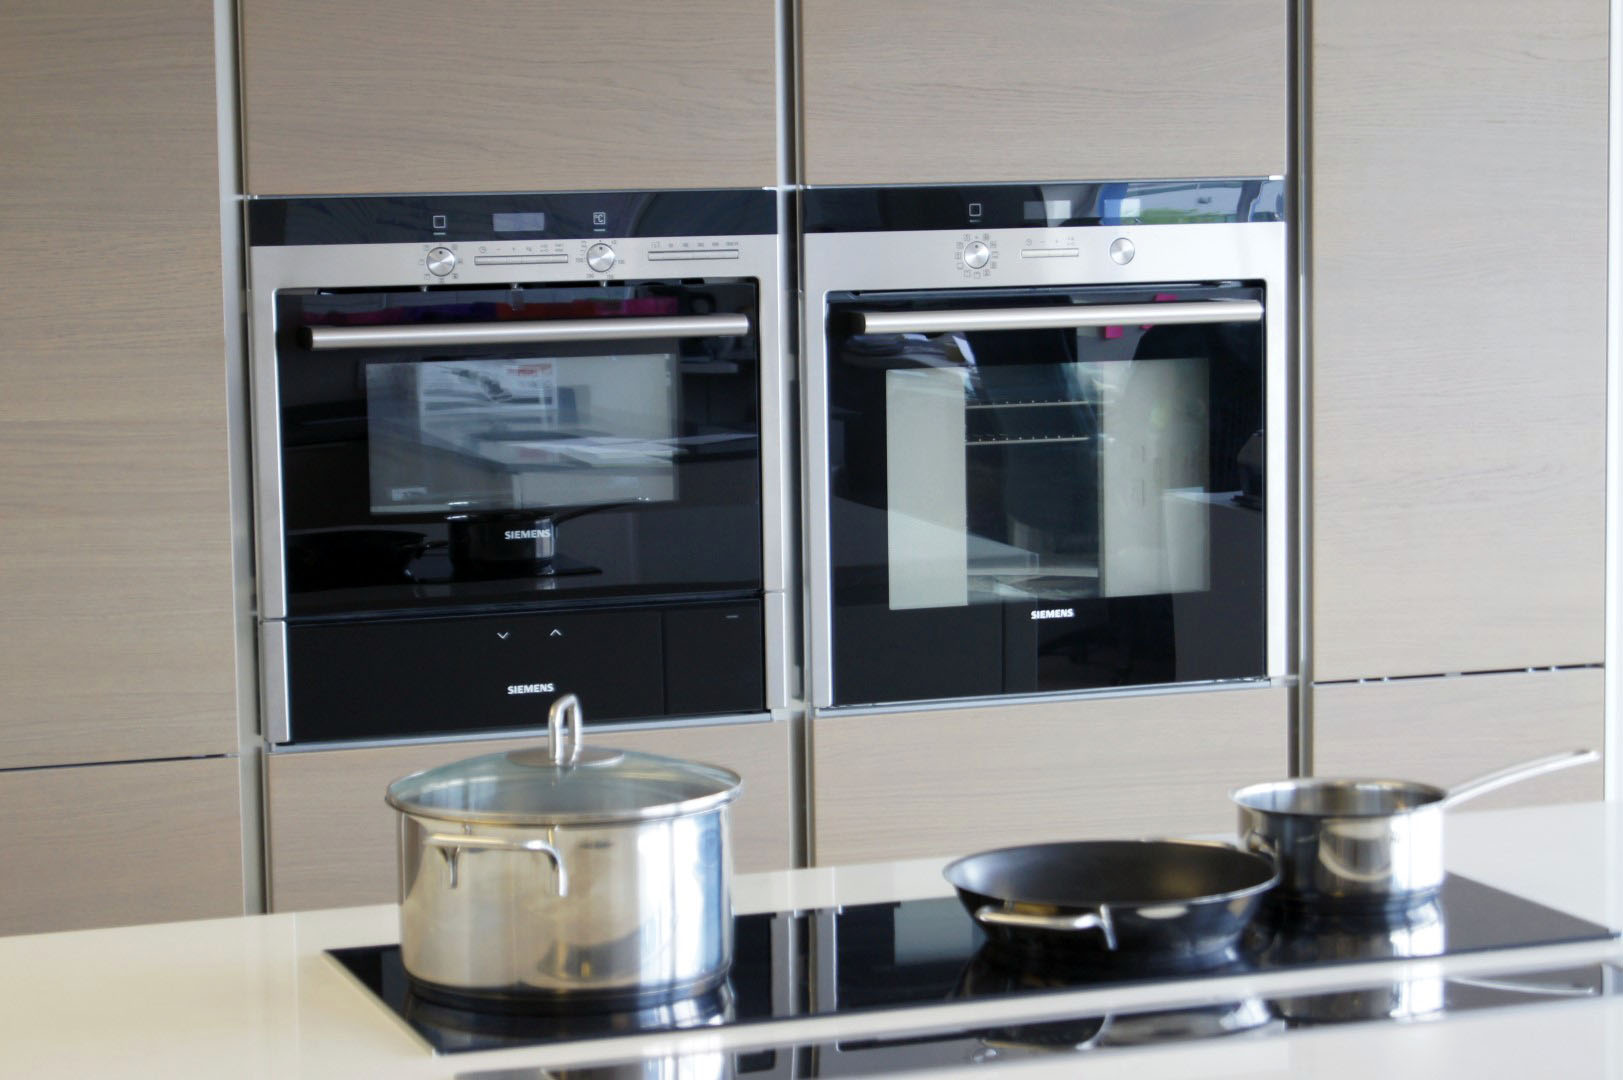 Showrooms blax german kitchens for German kitchen cabinets